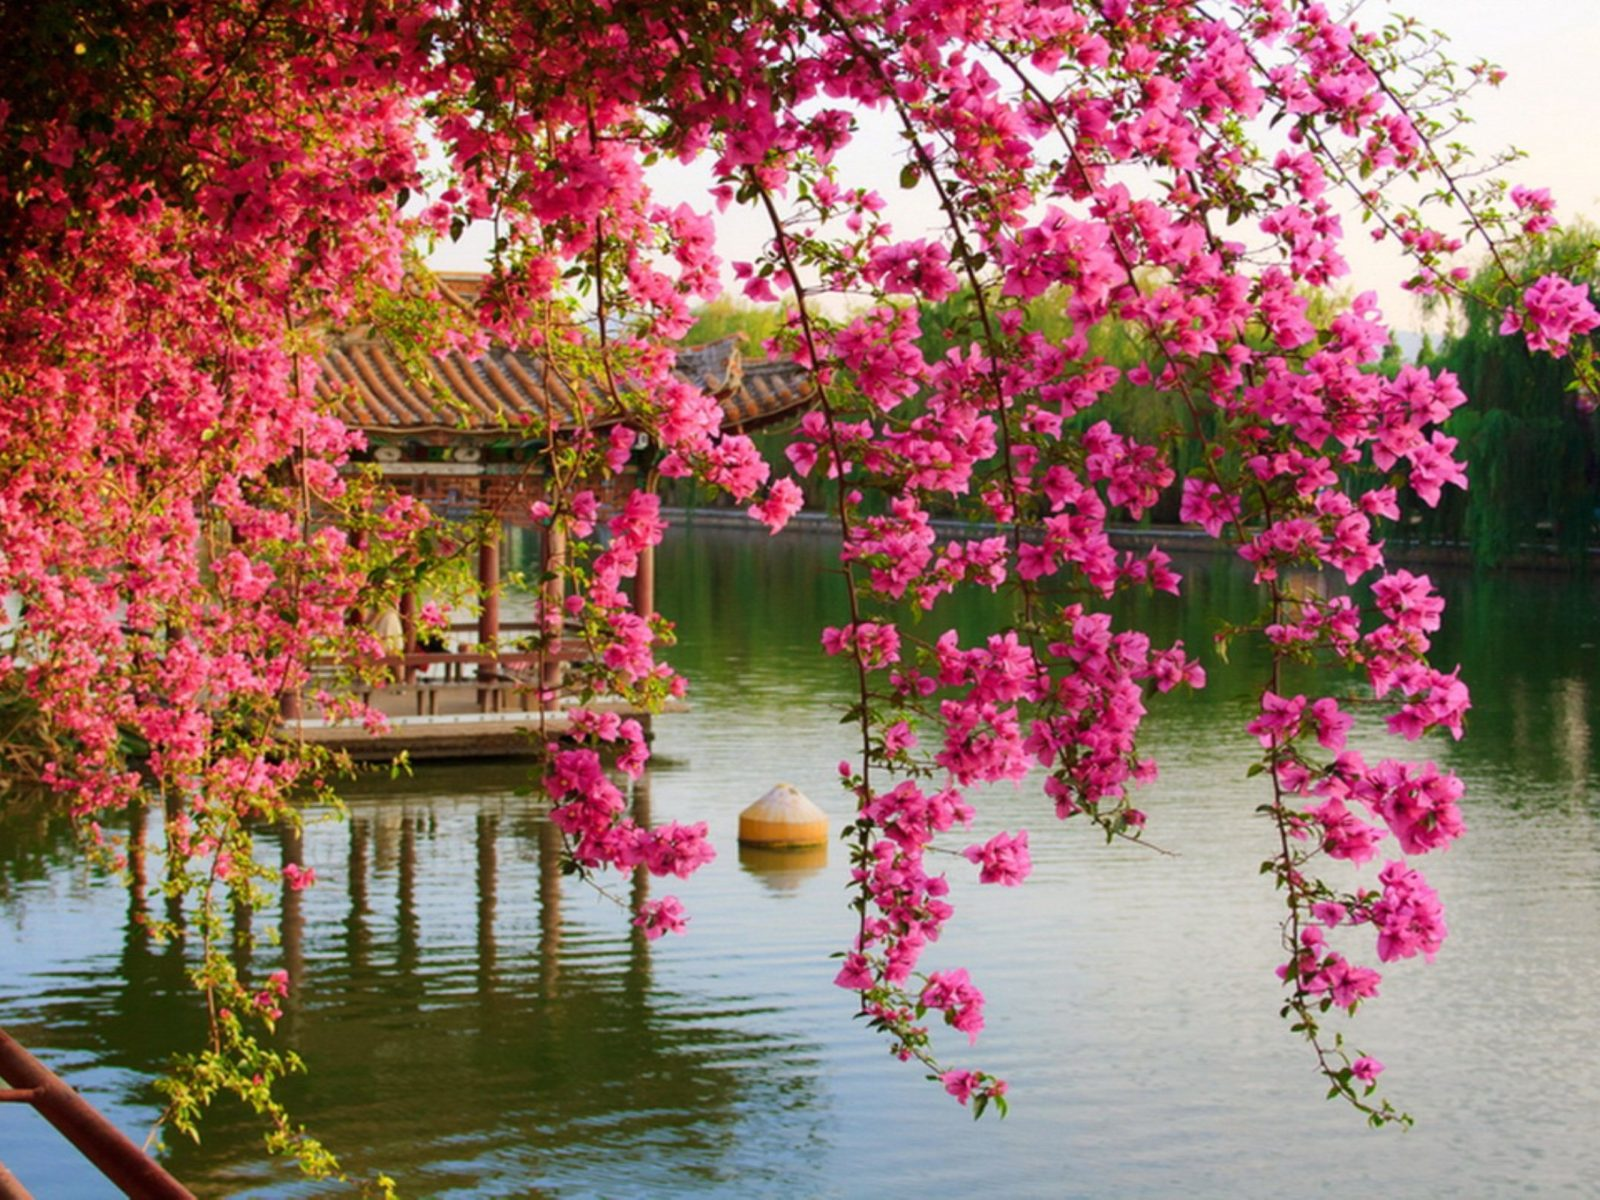 Fall Wallpaper For Desktop 1920x1080 Pink Spring Flowers In The Park Chinese Kunming China Hd